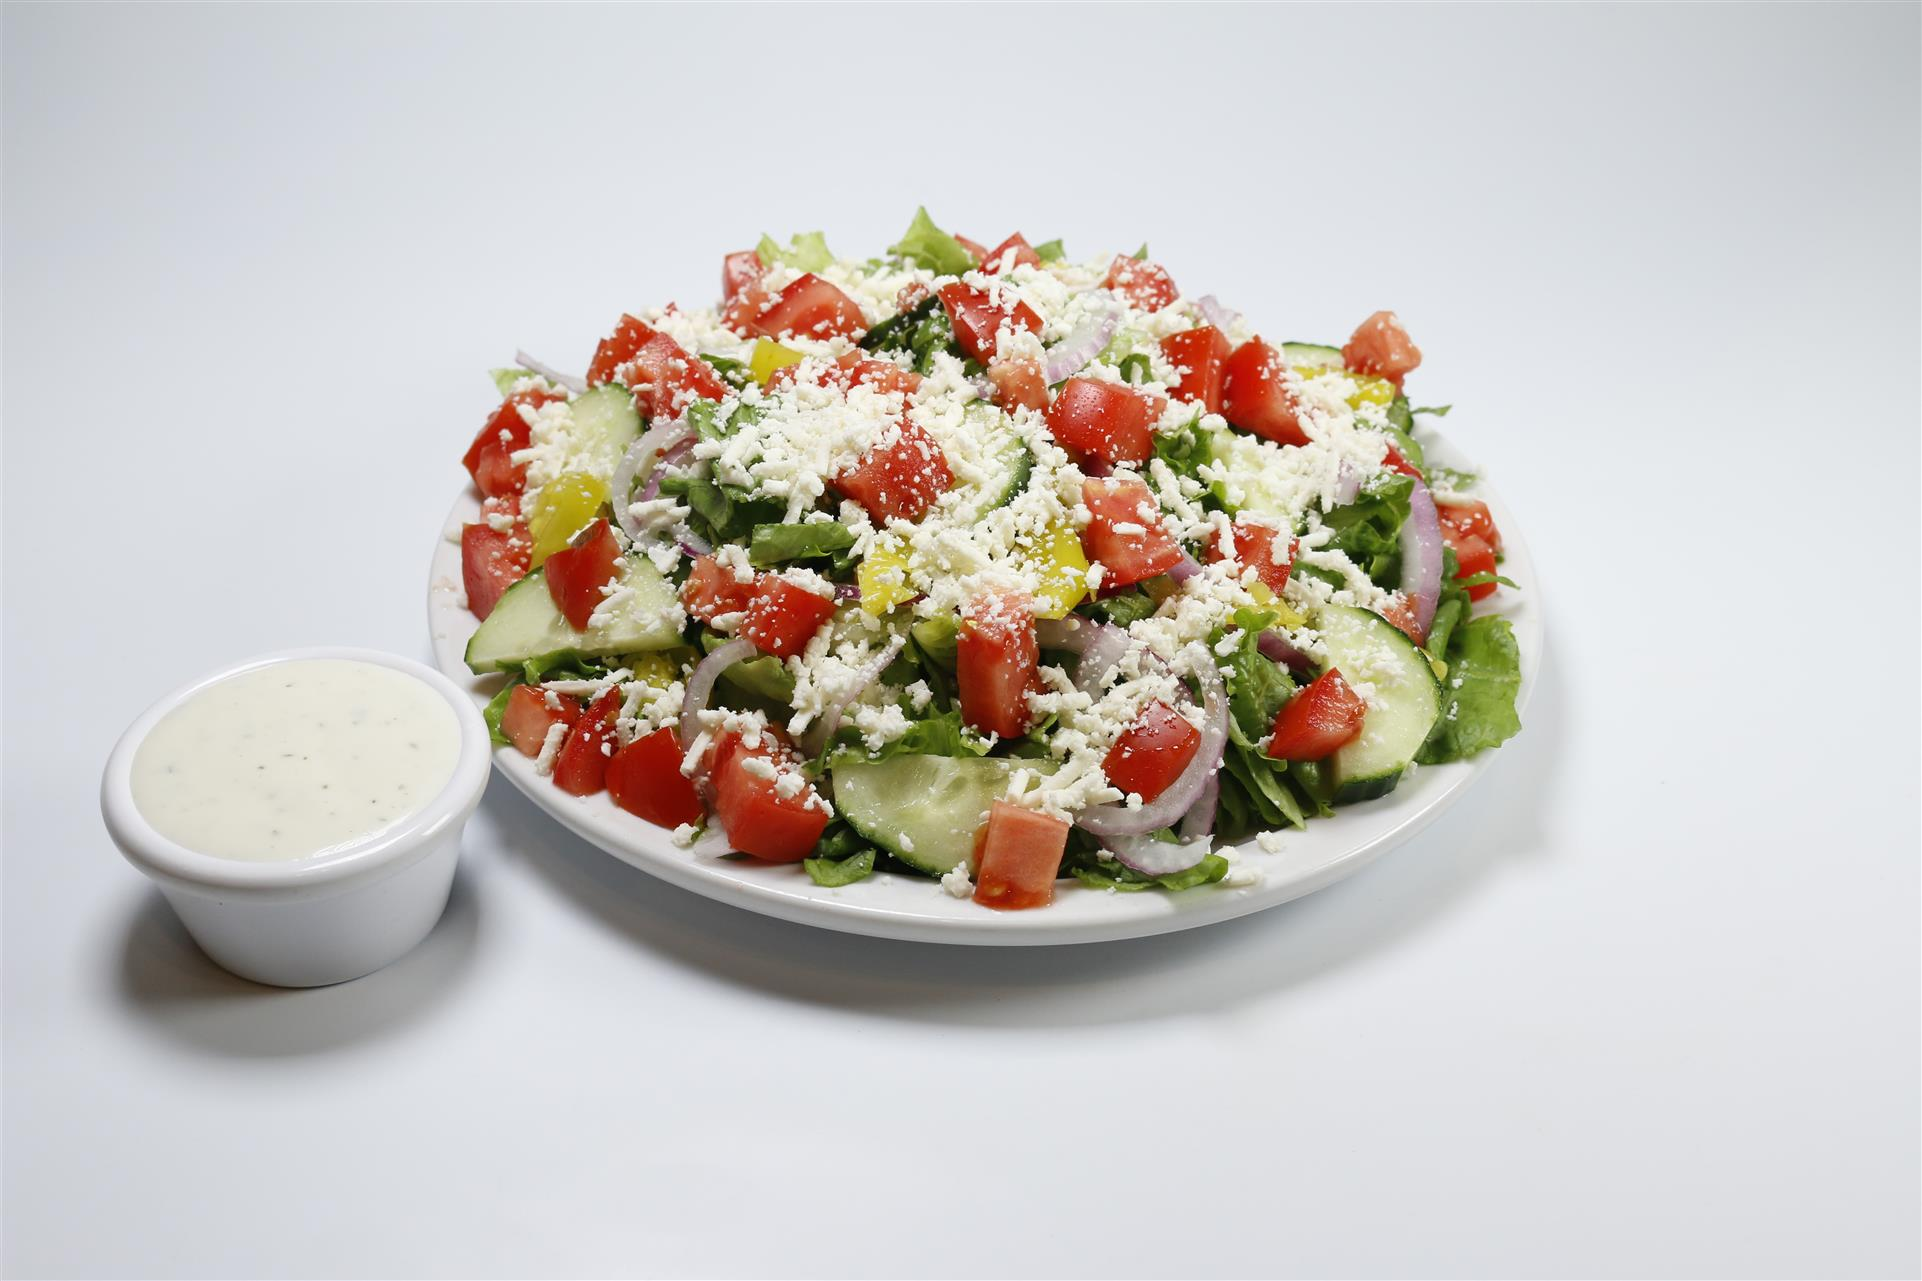 Greek Salad topped with feta cheese, tomatoes, and red onions with dressing on the side